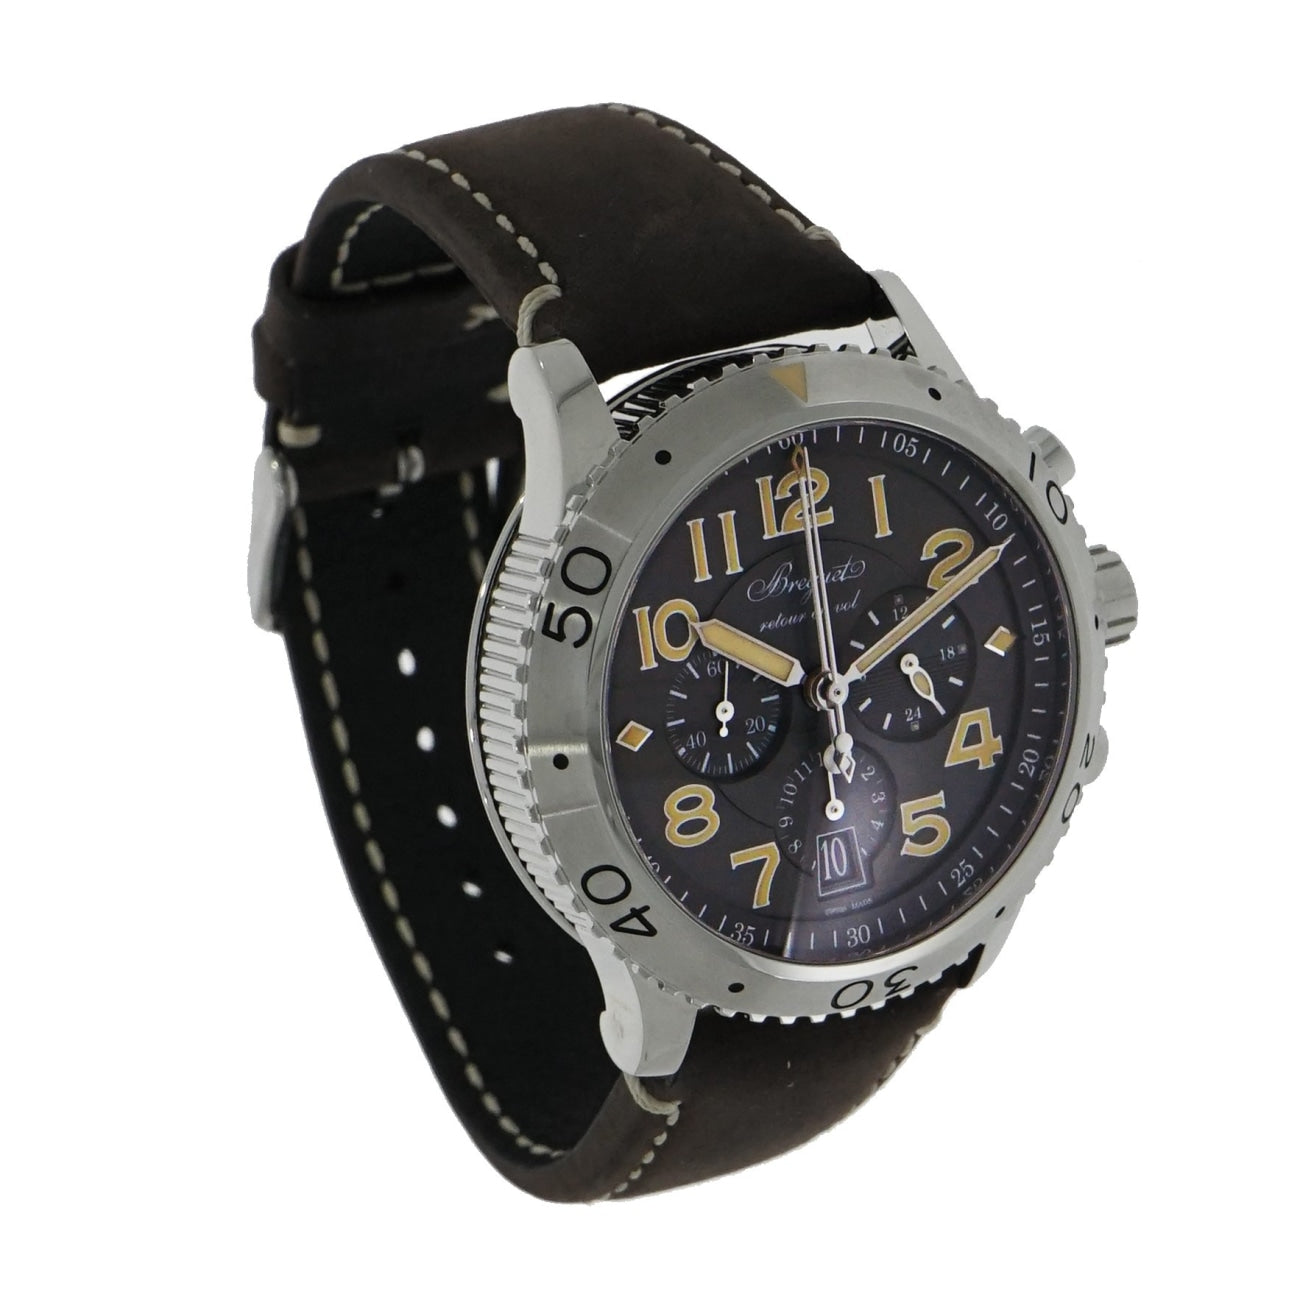 Pre-Owned Breguet Watches - Flyback Chronograph Type XXI Stainless Steel | Manfredi Jewels